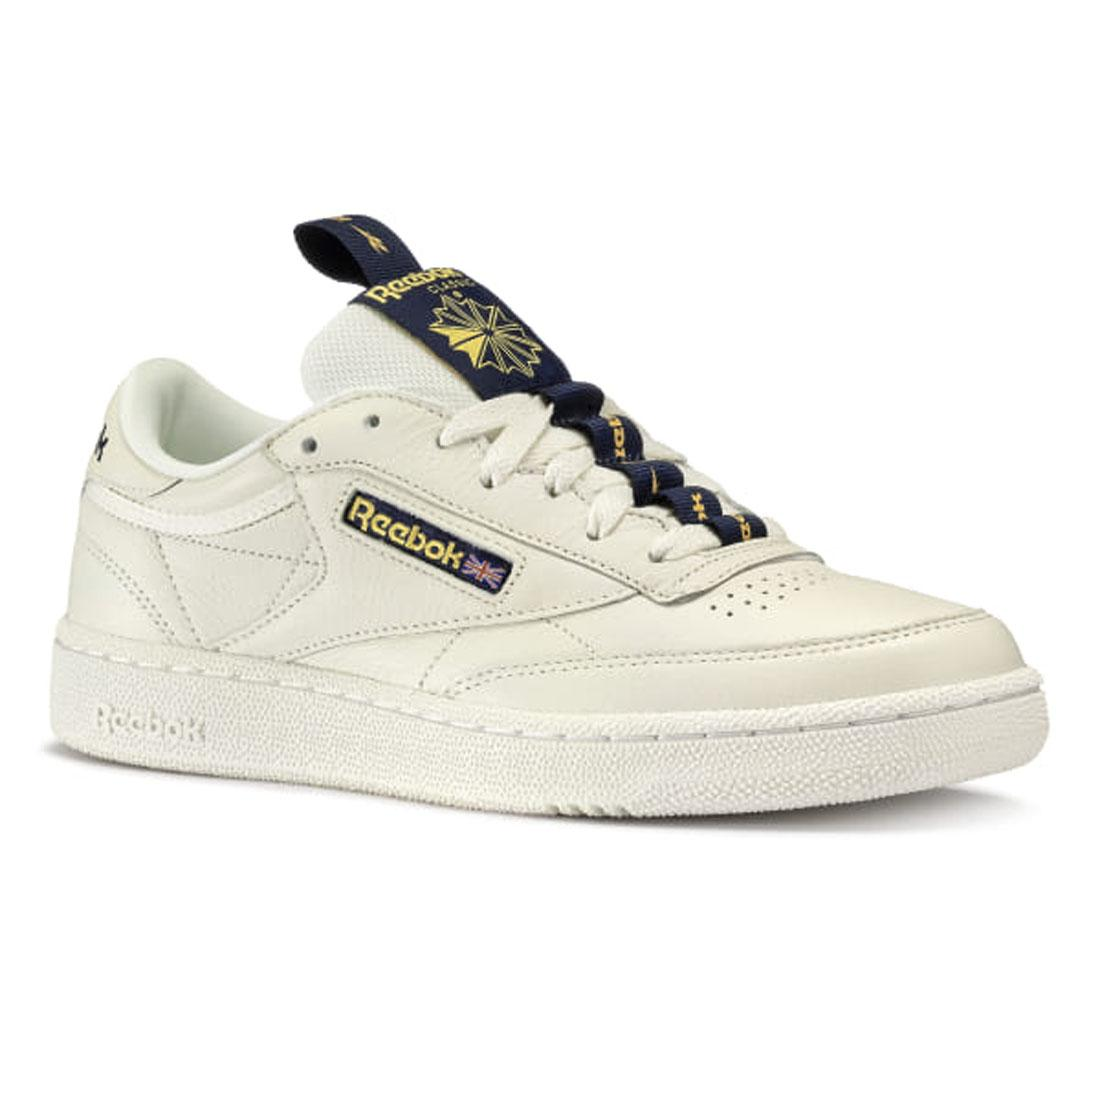 Details about Reebok Classic Leather Club C 85 Retro Mens White Trainers Sports Shoes UK 7.5